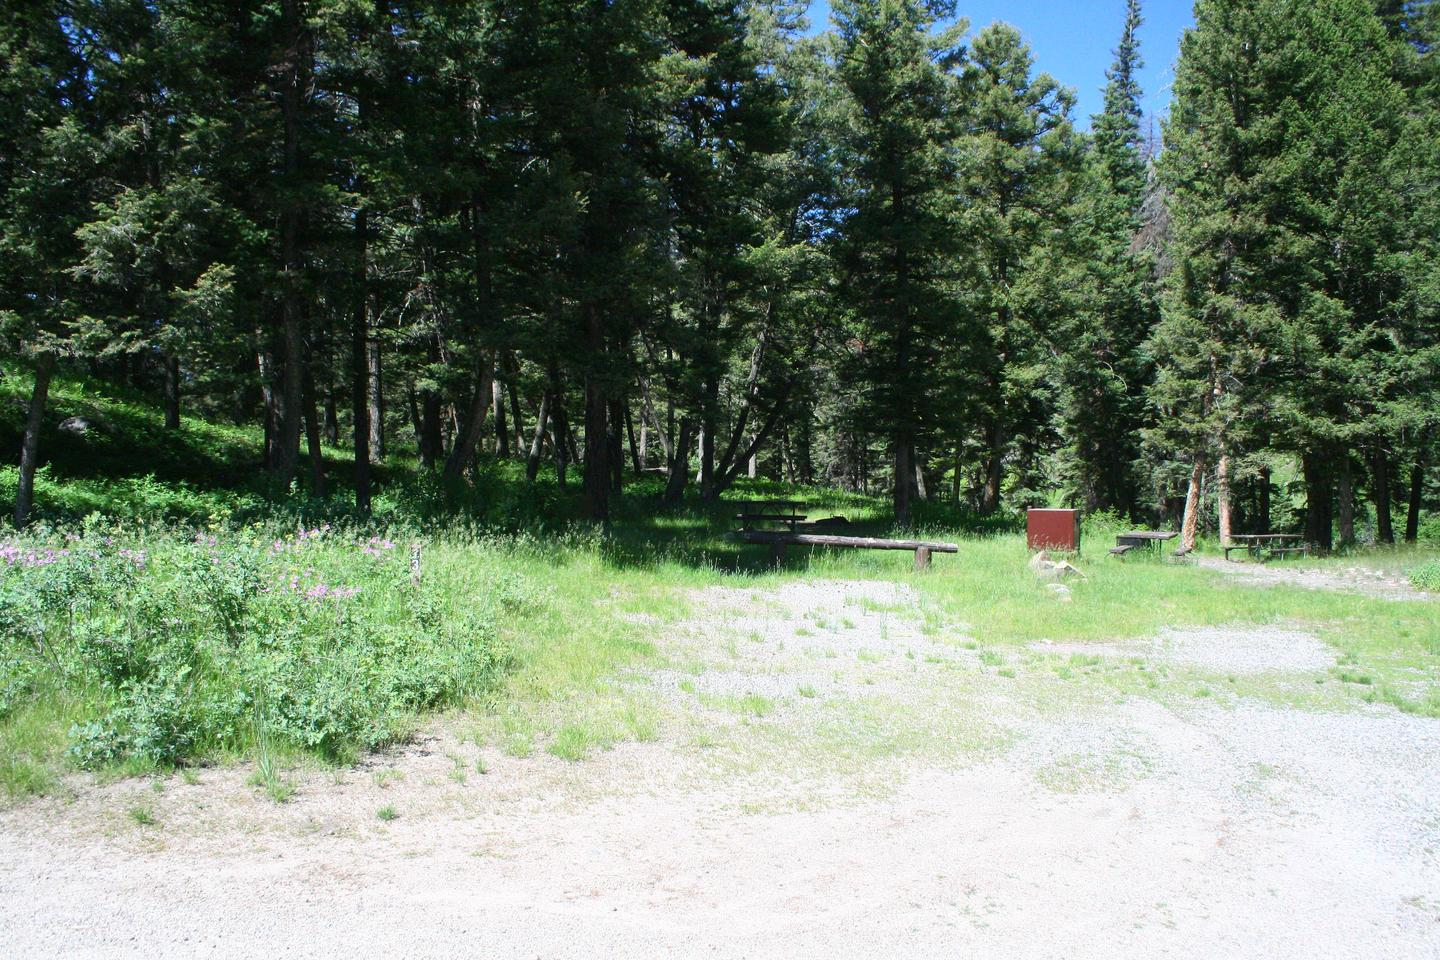 Slough Creek Campground Site #13....Slough Creek Campground Site #13